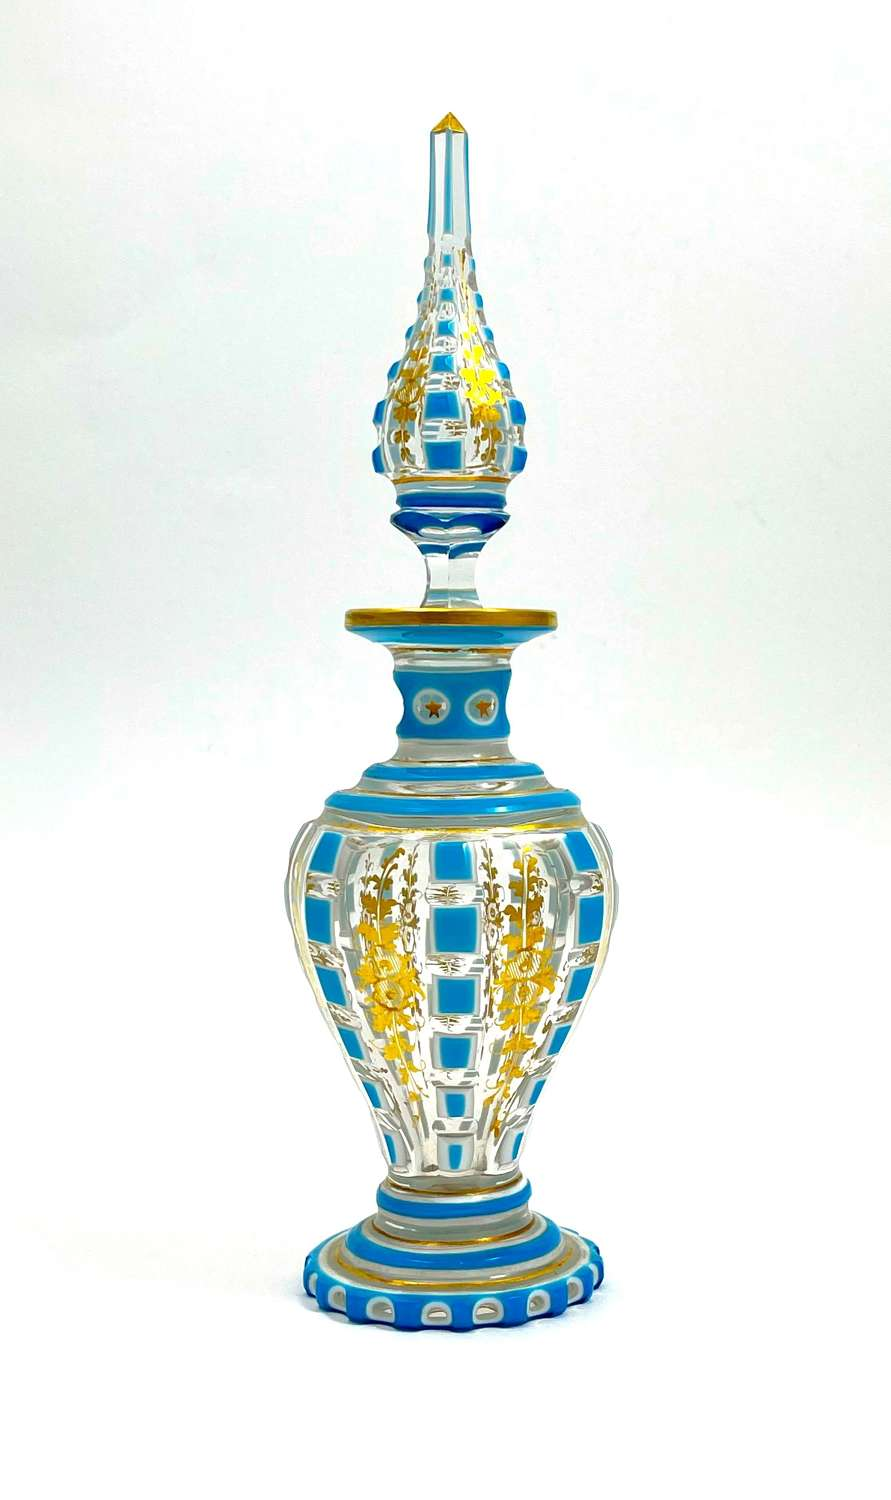 Exquisite BACCARAT Clear and Turquoise Opaline Overlay Perfume Bottle